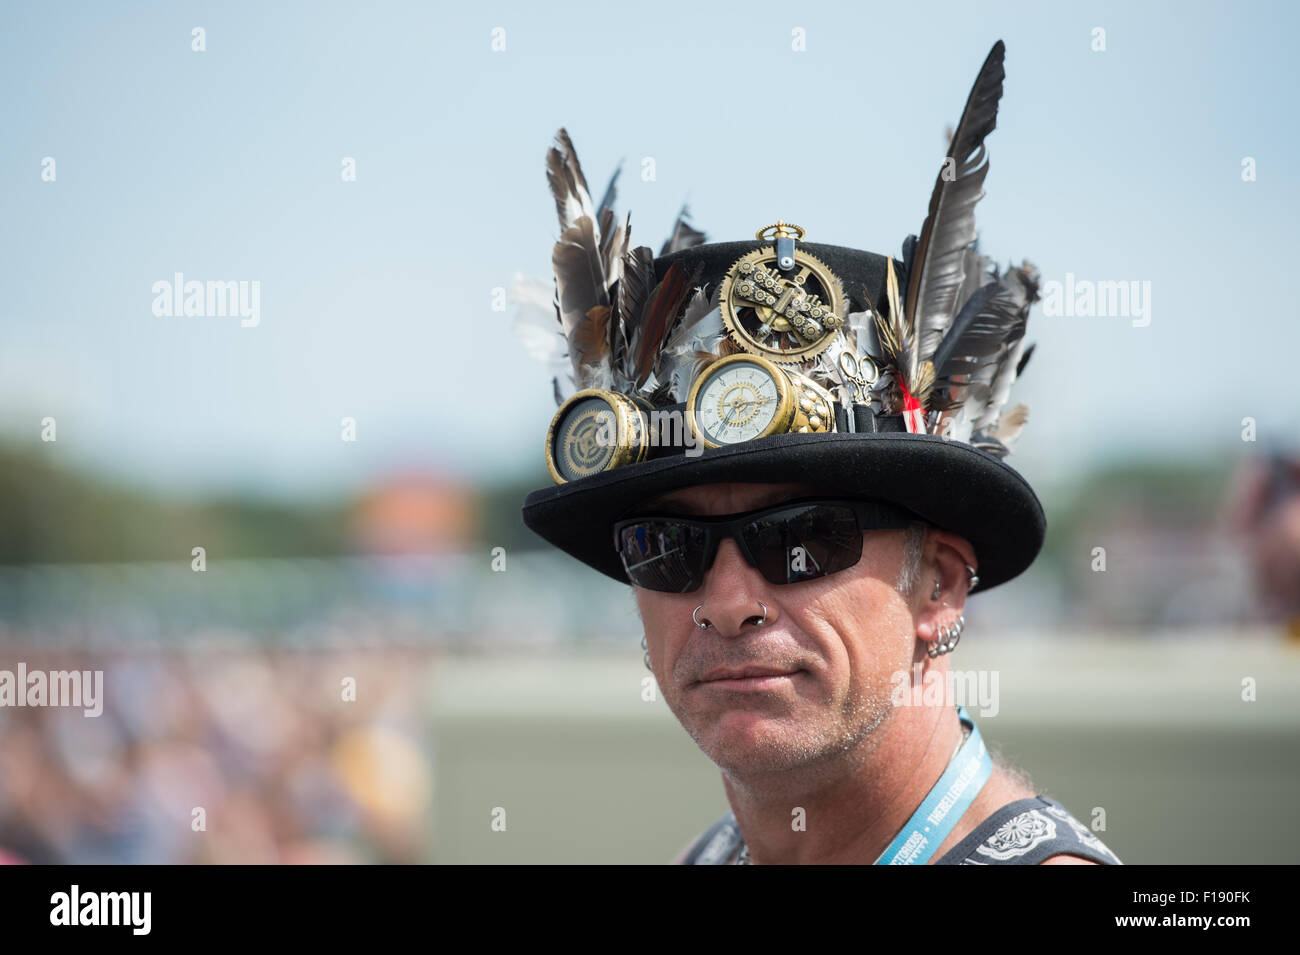 Portsmouth, UK. 29th August 2015. Victorious Festival - Saturday. A man in a steampunk hat watches Texas from the Stock Photo